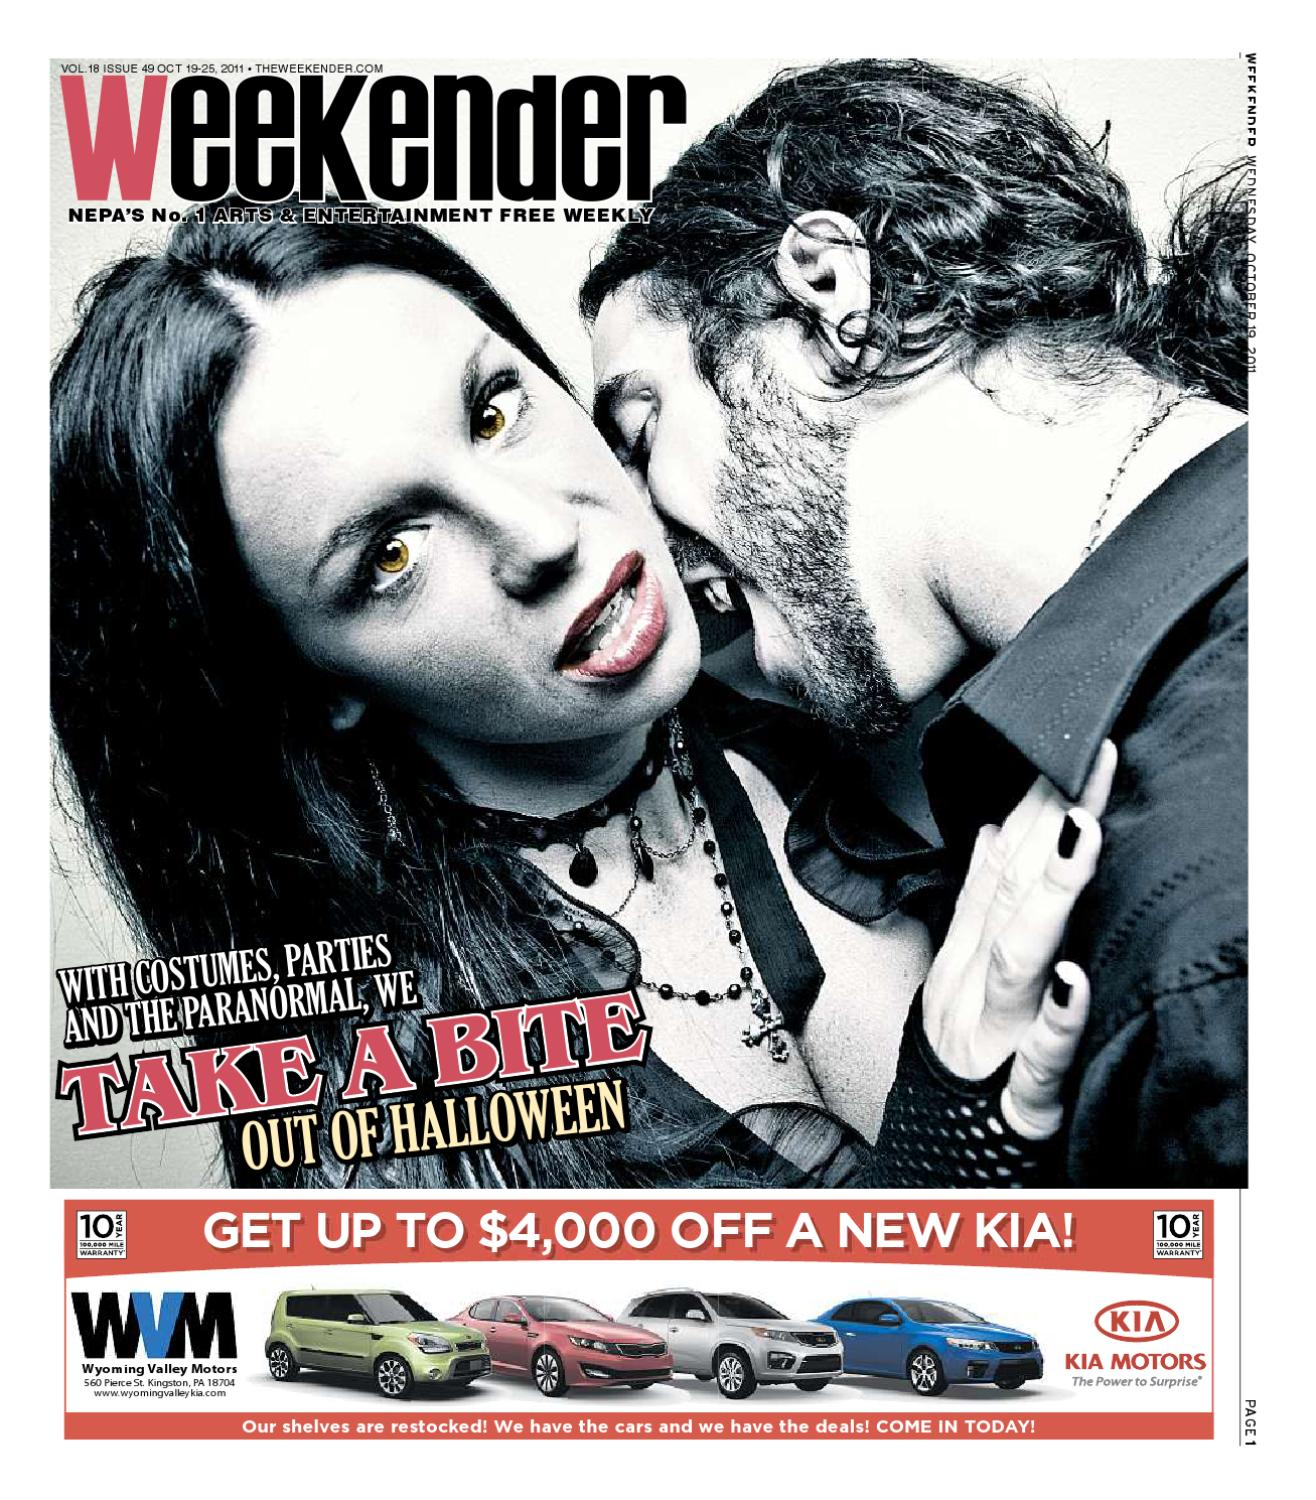 2917eeb0d7 The Weekender 10-19-2011 by The Wilkes-Barre Publishing Company - issuu